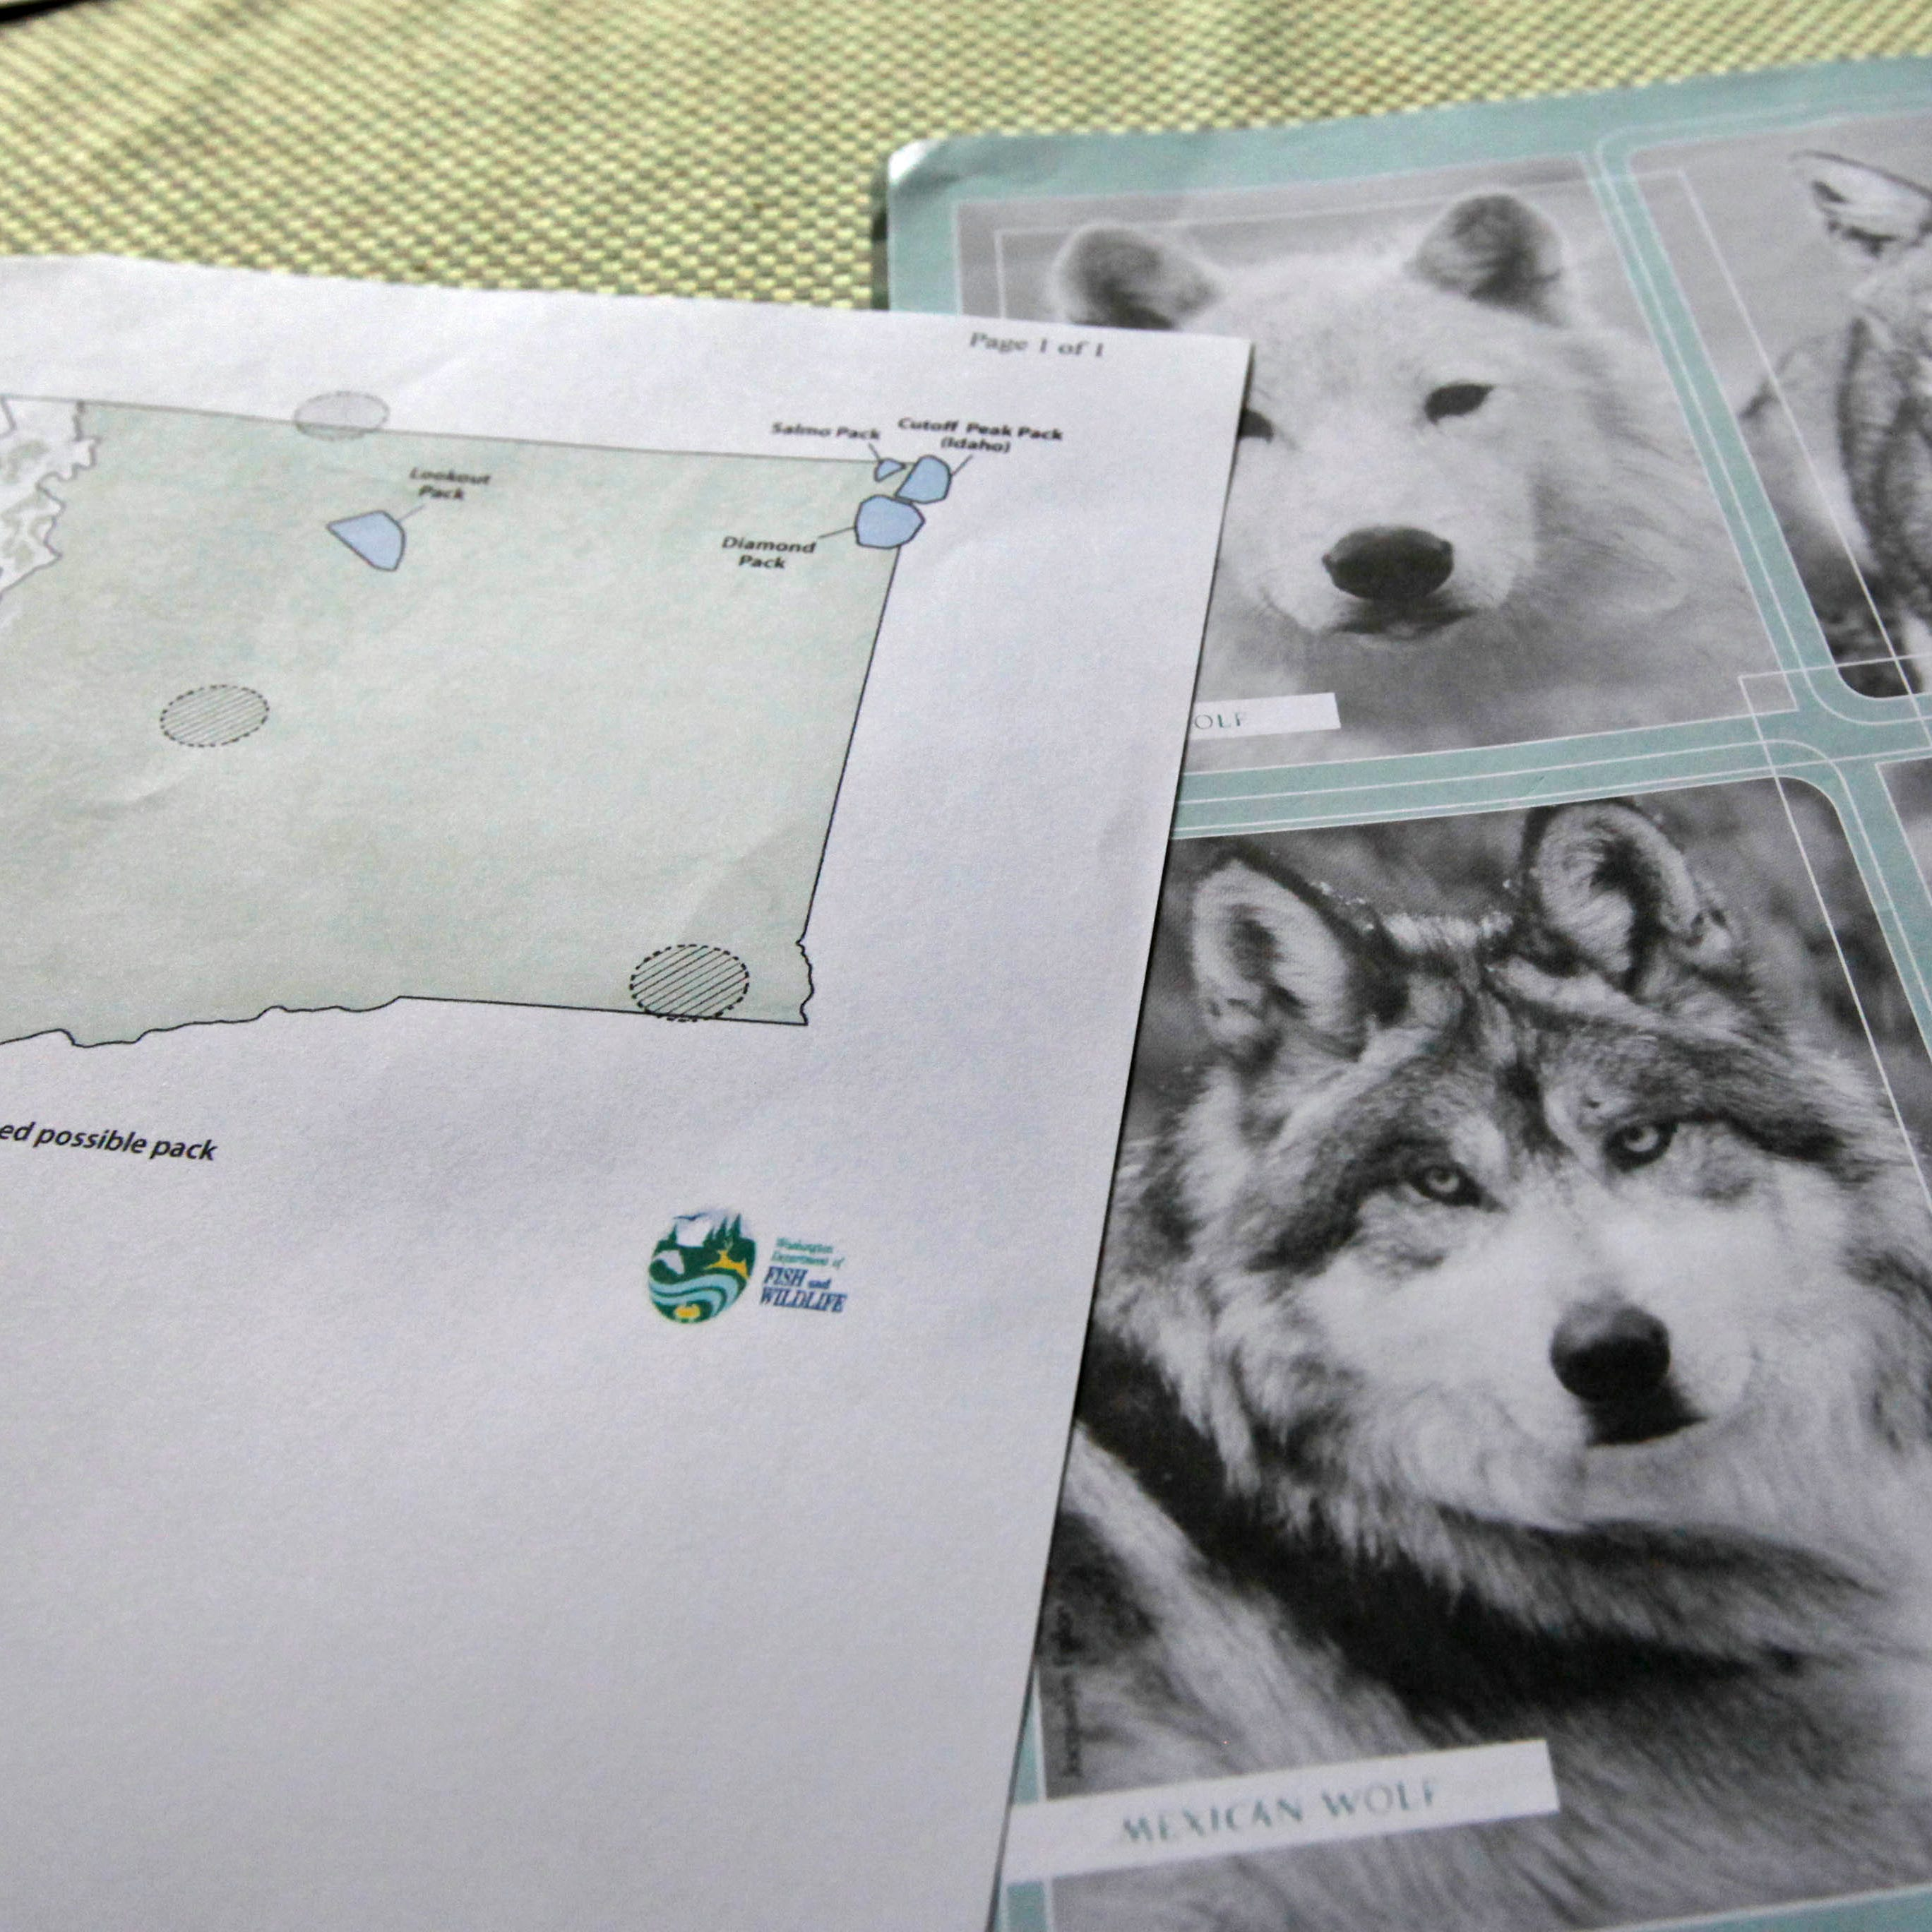 Count of Washington gray wolves finds more packs, breeding pairs